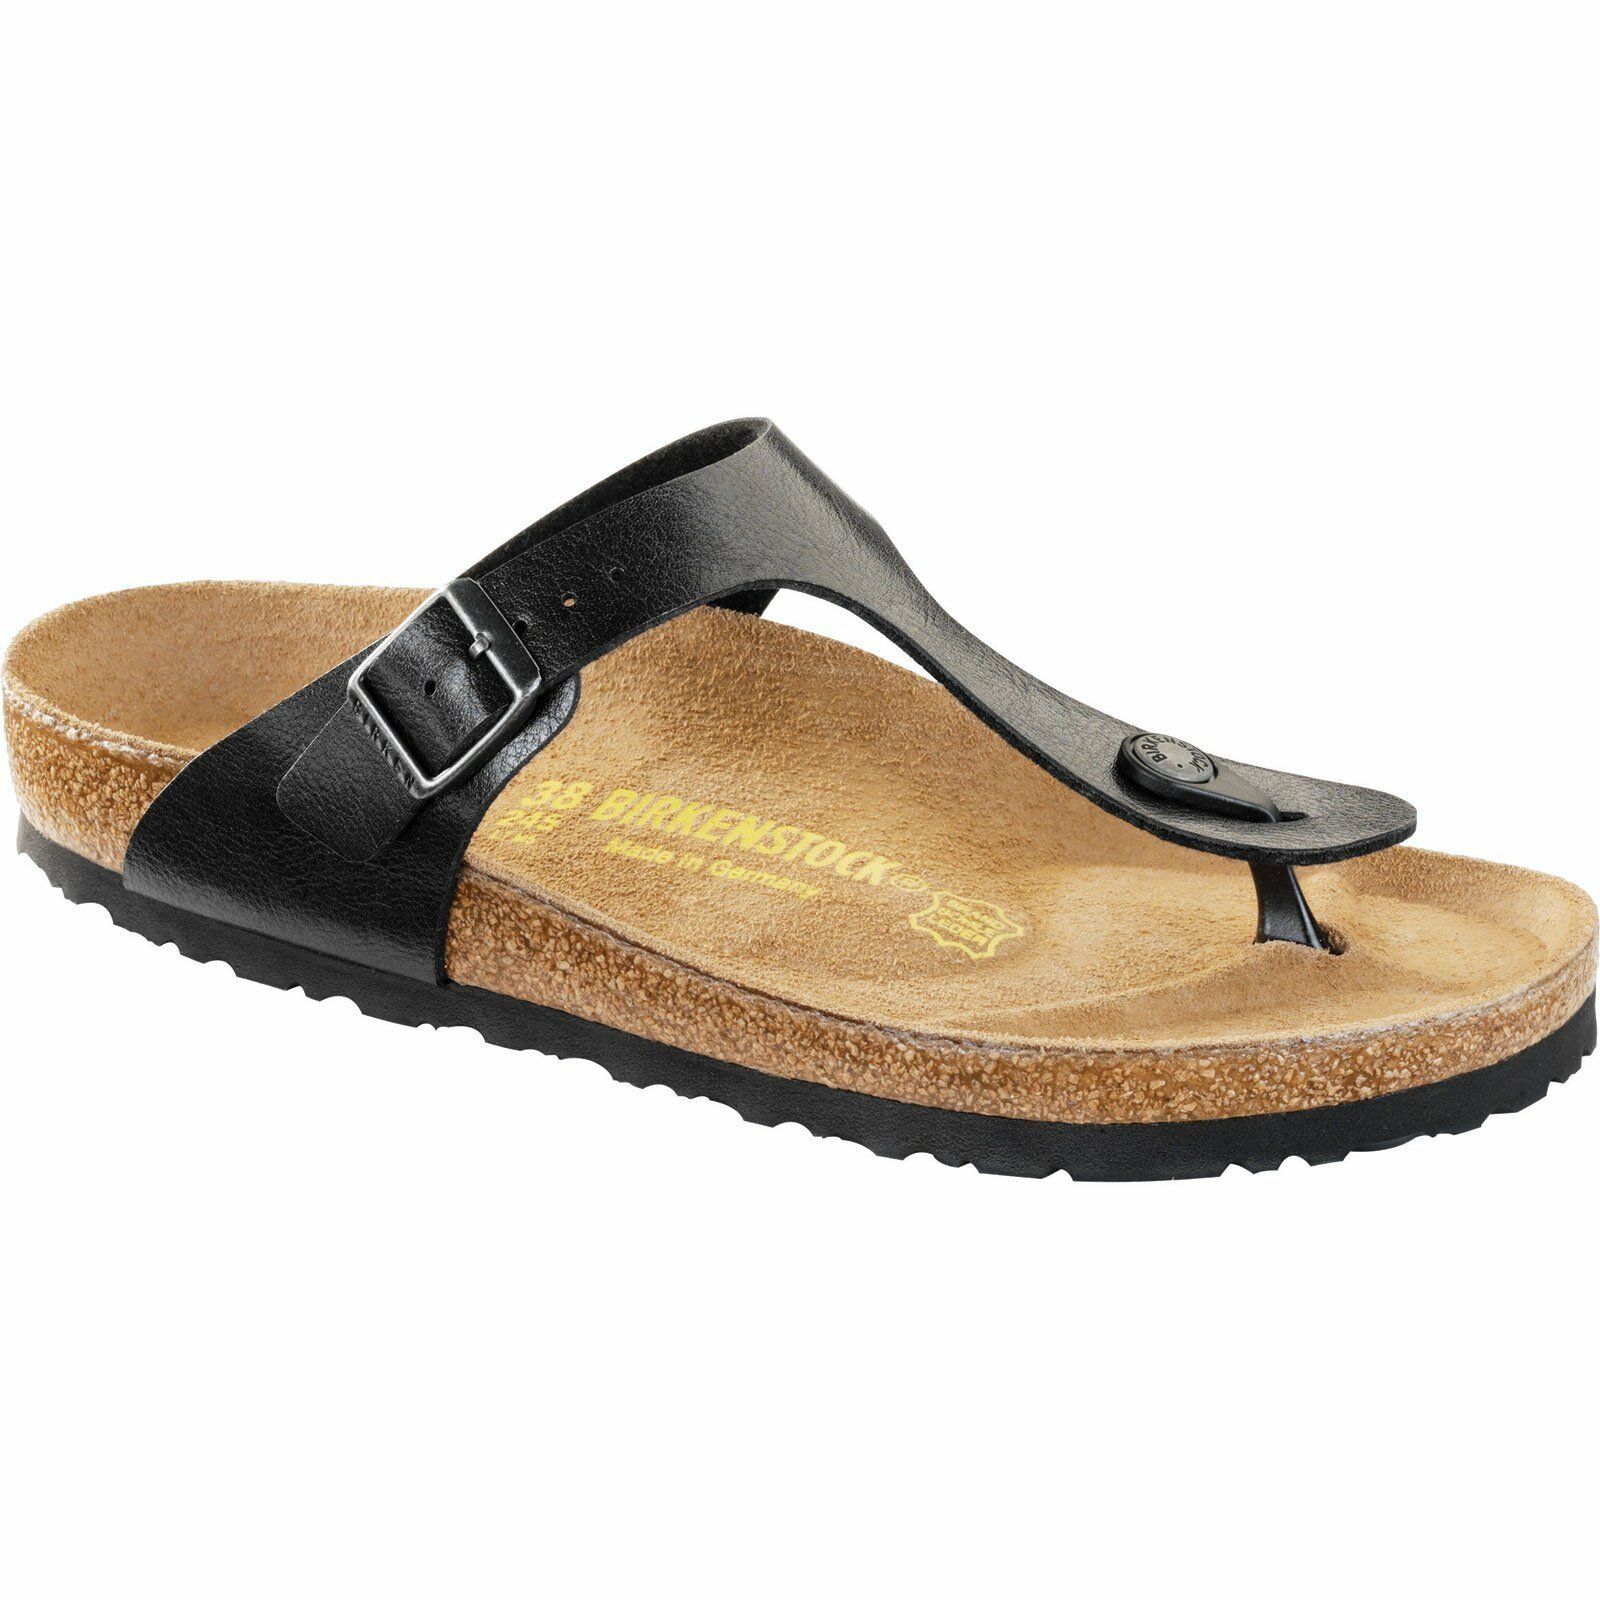 Birkenstock Gizeh graceful Licorice Birko-flor tamaño 35-43 plantilla normal